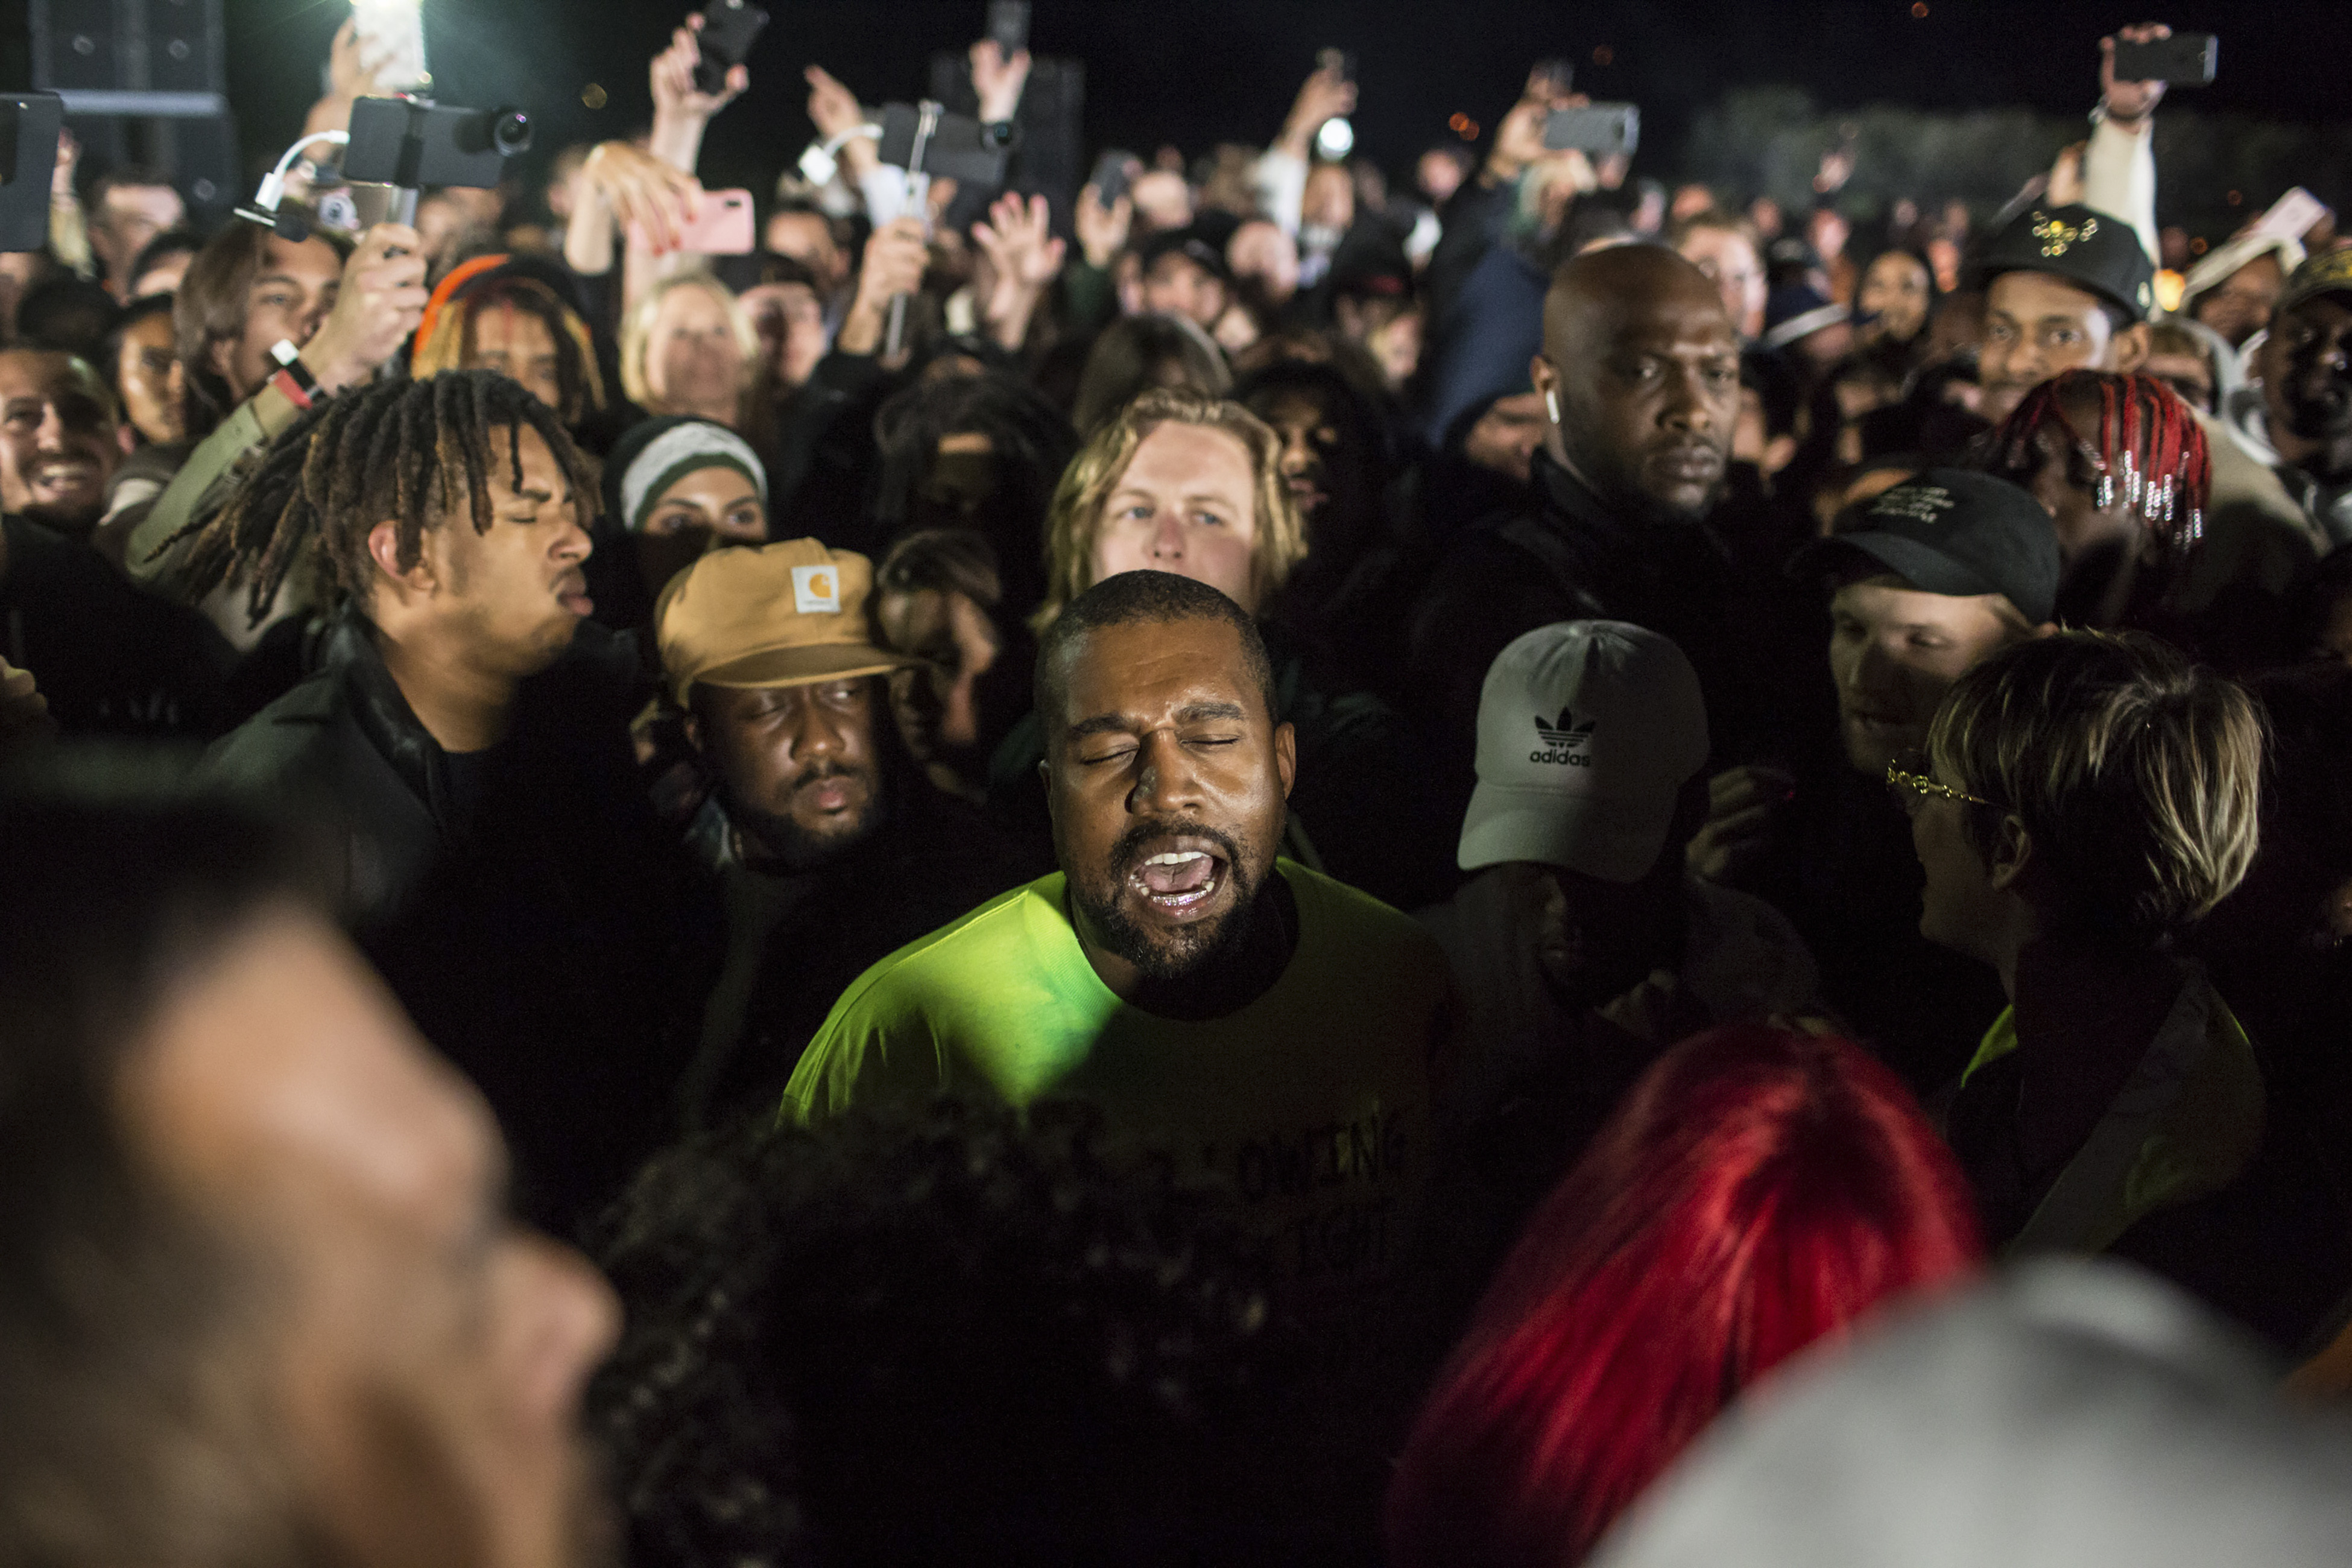 Review: Kanye West's 'Ye' Album, Rob Sheffield Reviews